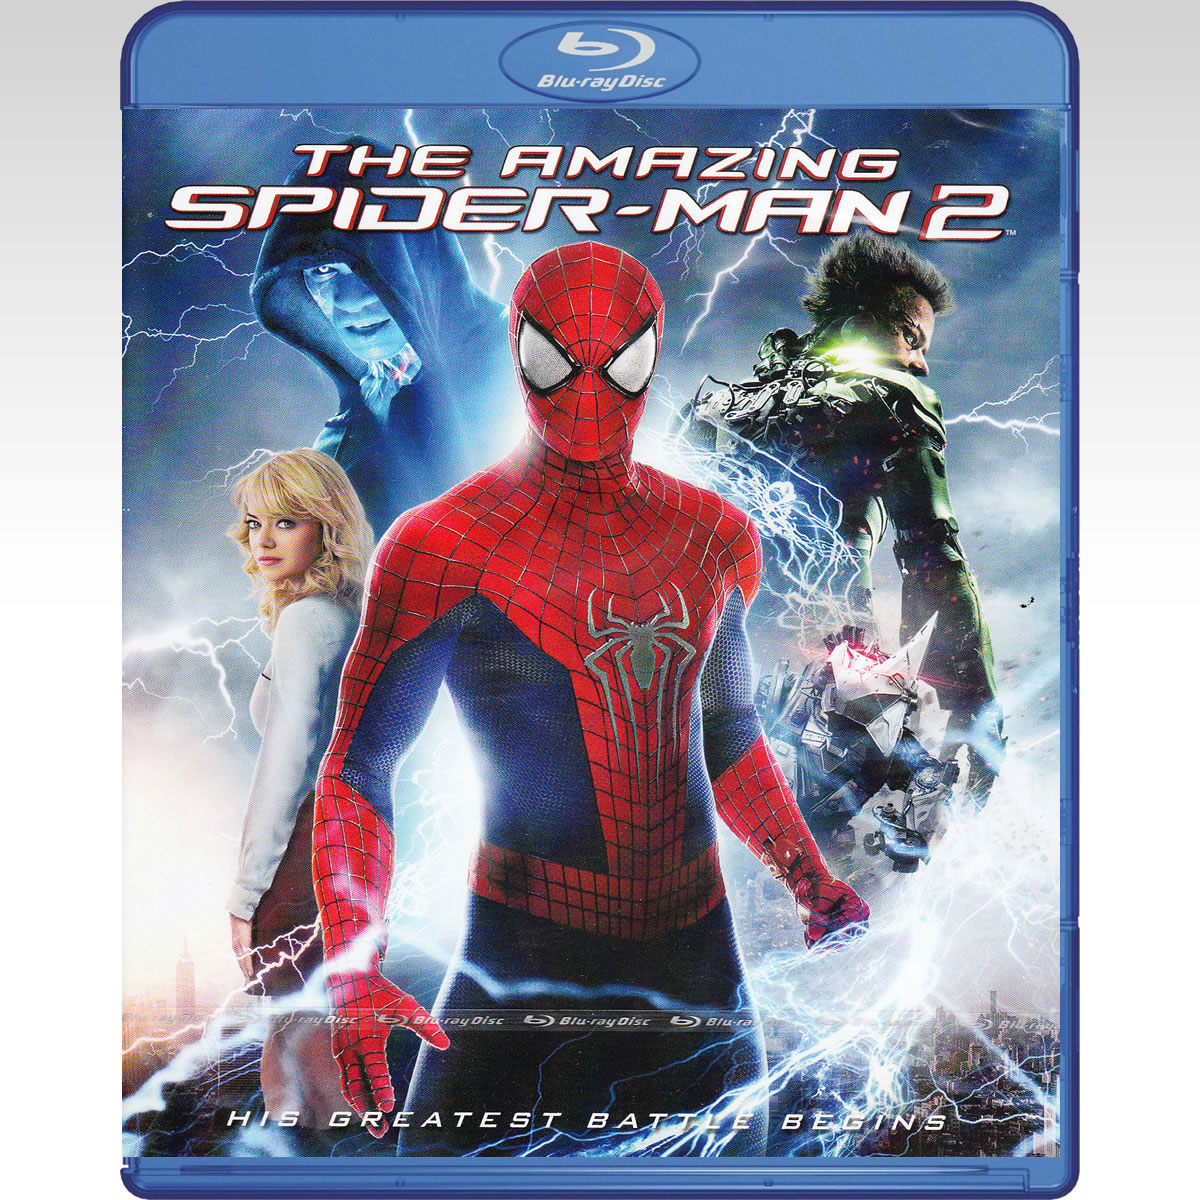 THE AMAZING SPIDER-MAN 2 [4K MASTERED] (BLU-RAY)